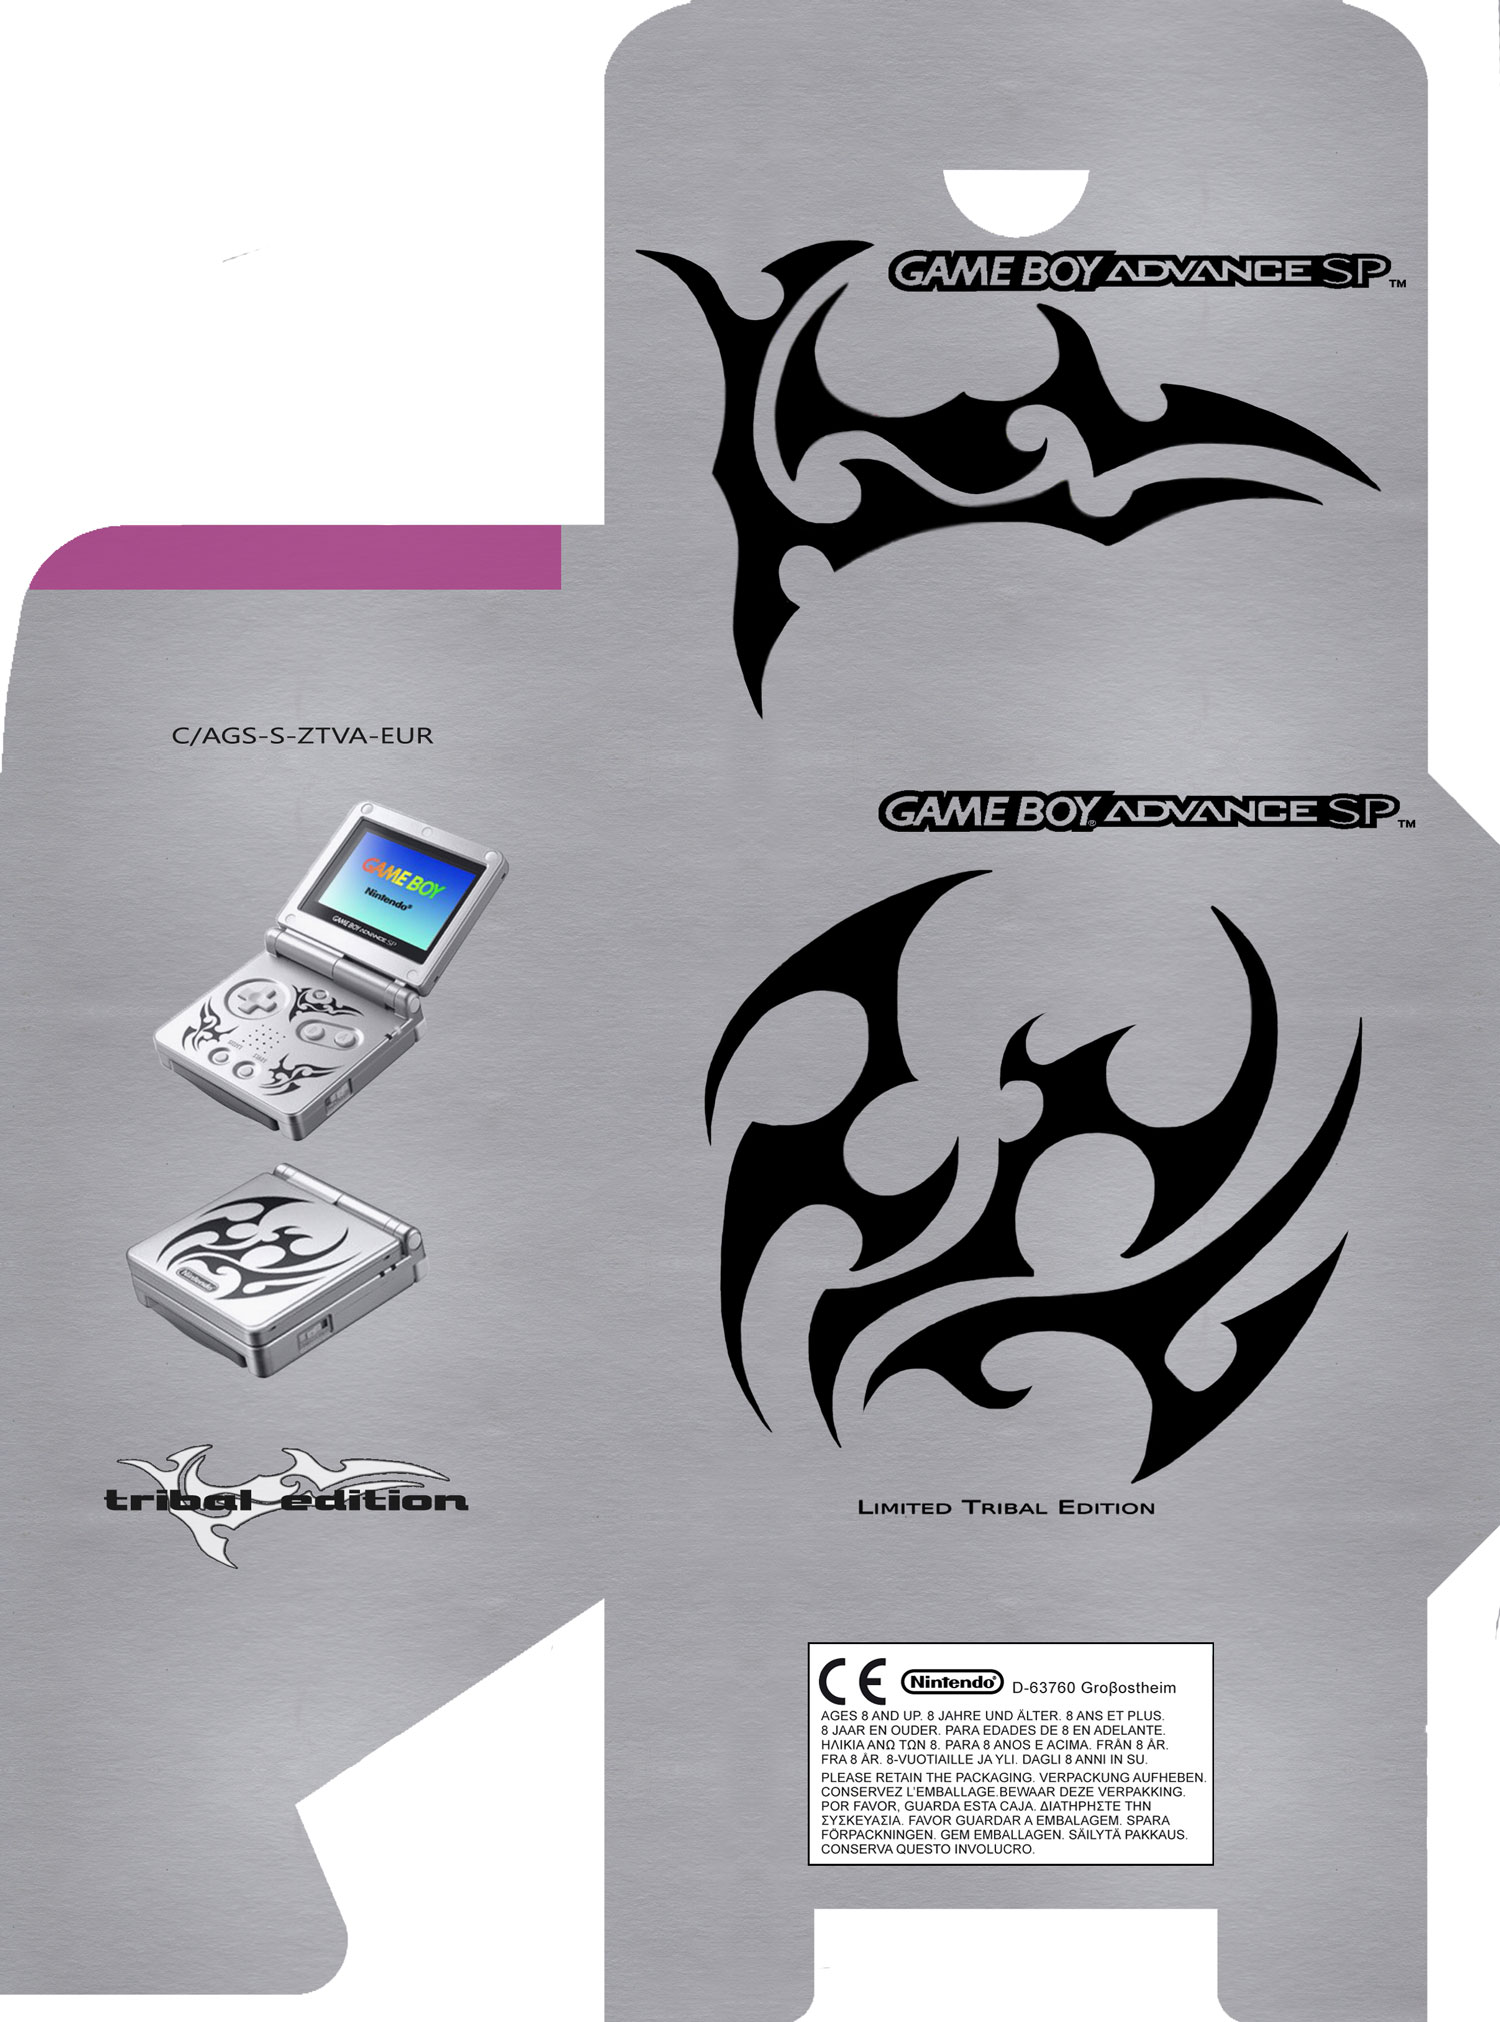 Projet-Game-boy-advance-SP-Tribal-edition.jpg